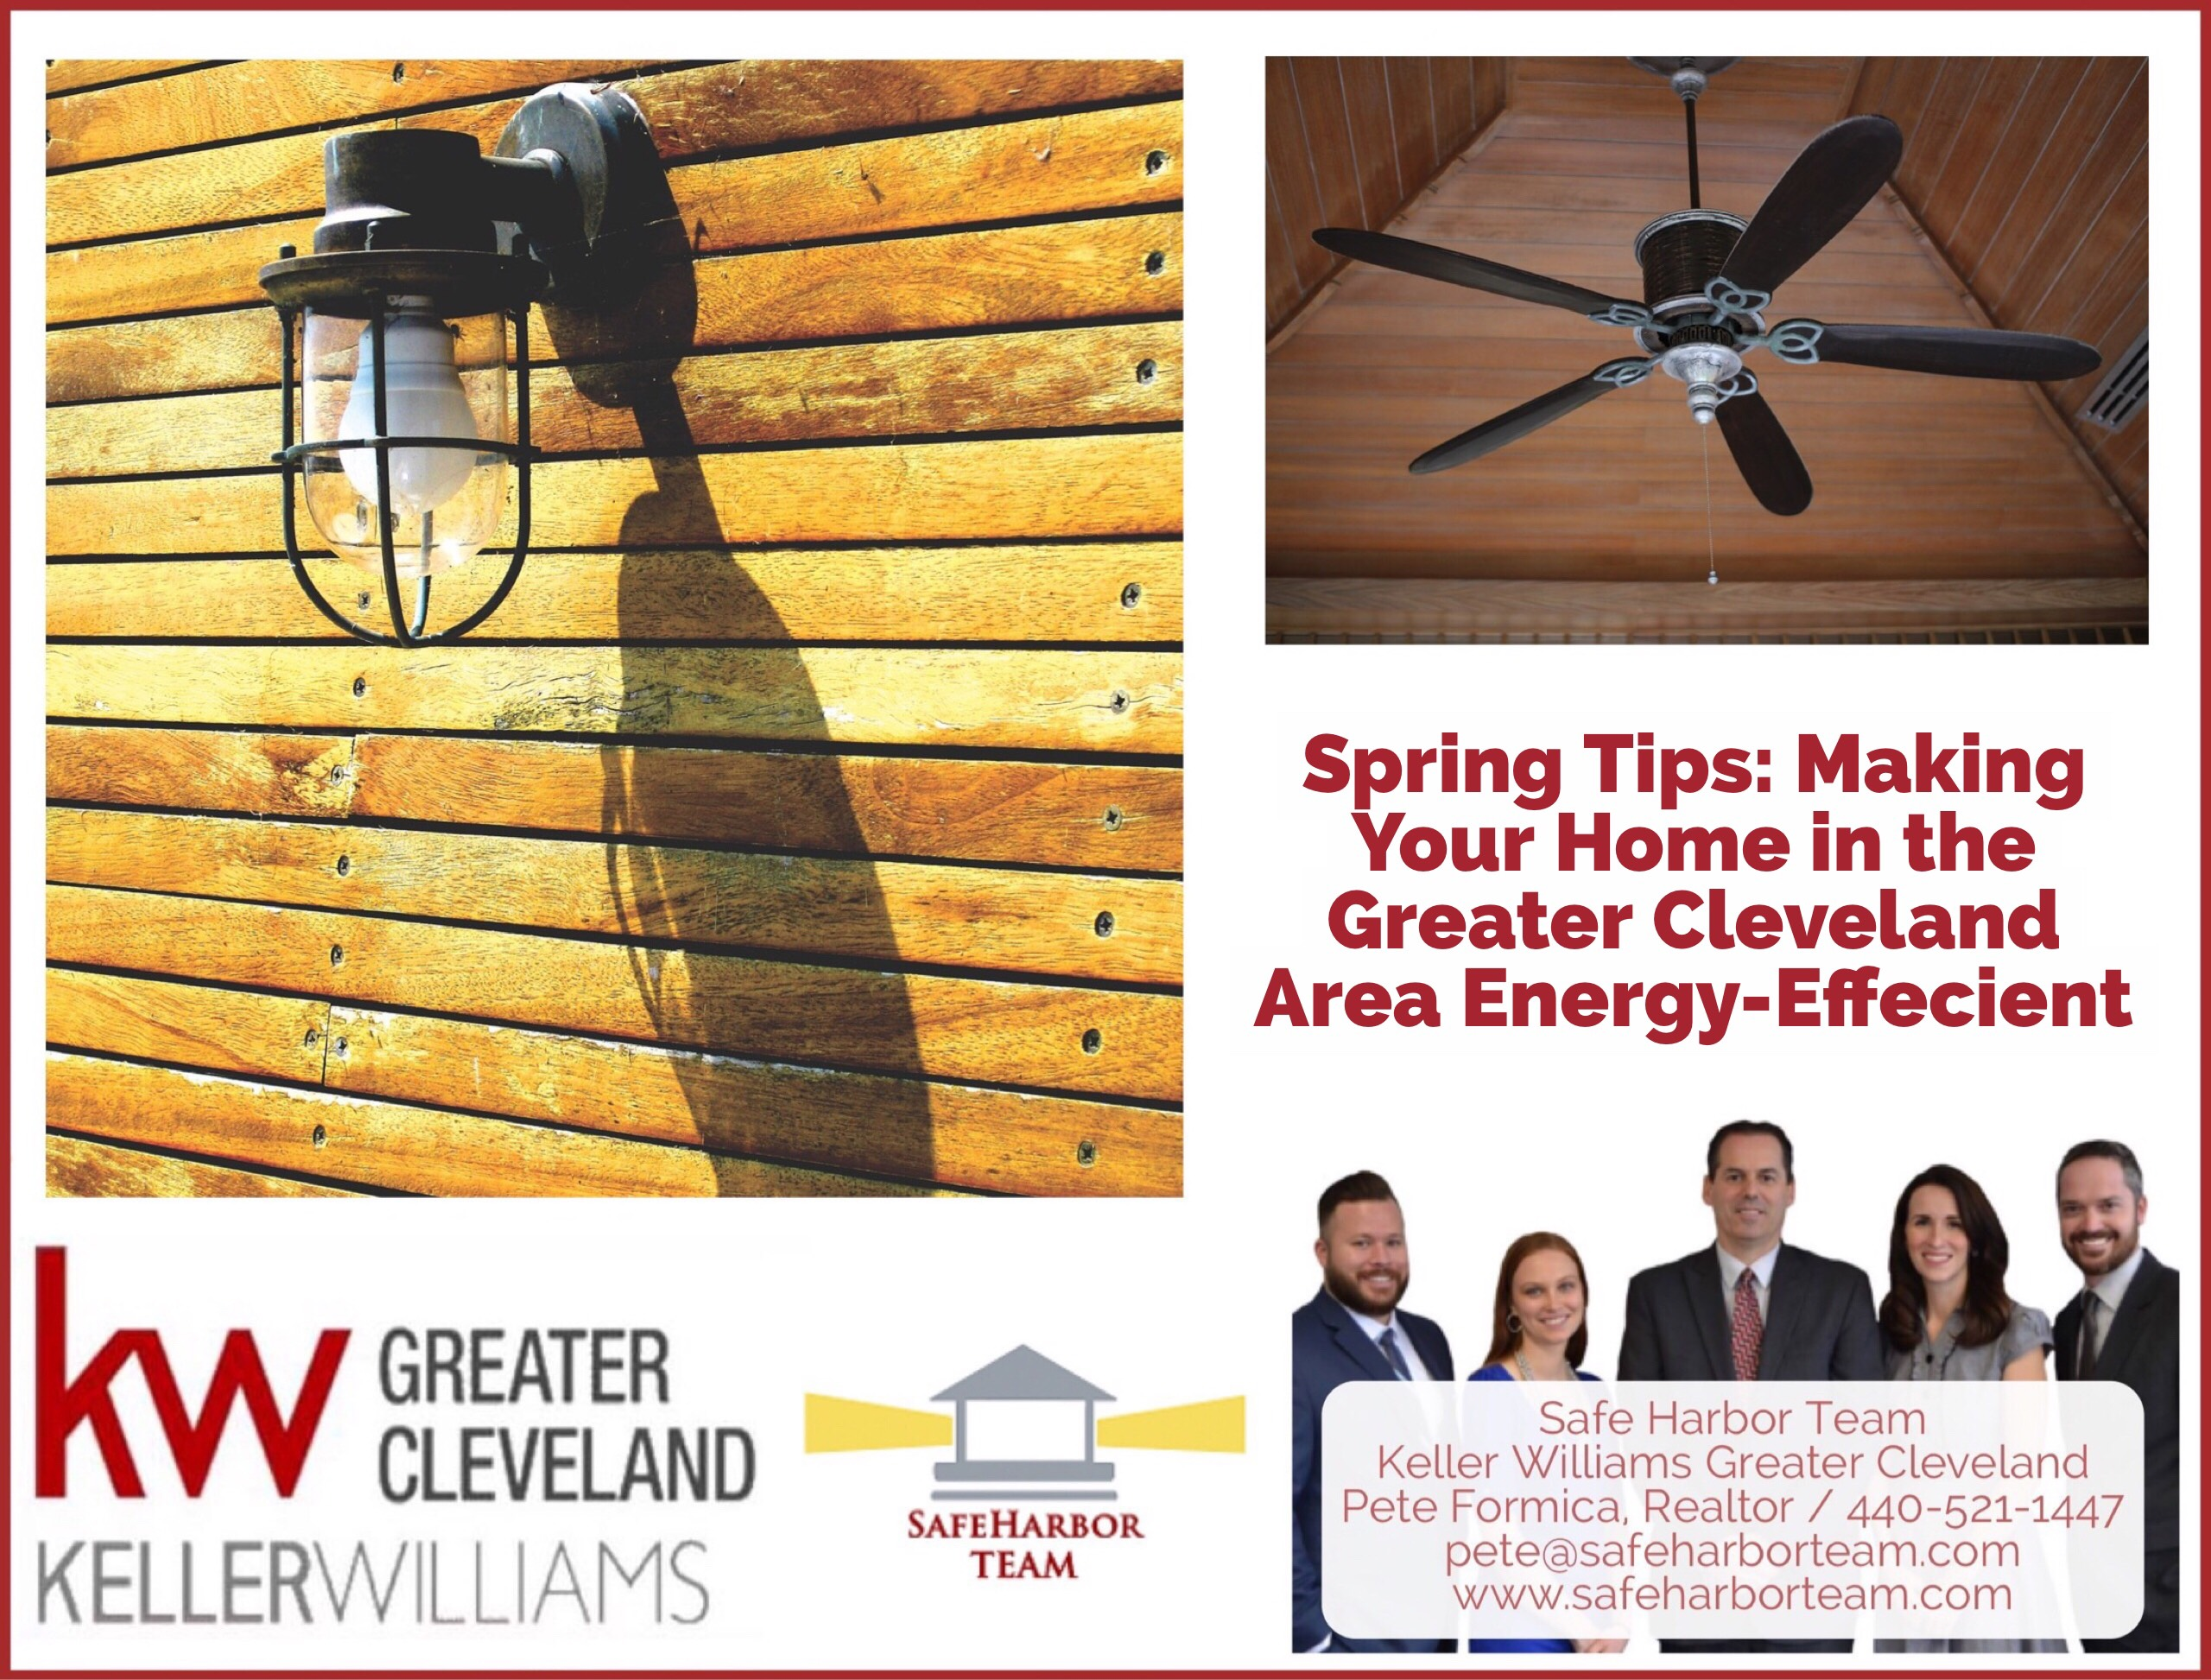 Spring Tips: Making Your Home in the Greater Cleveland Area Energy-Efficient